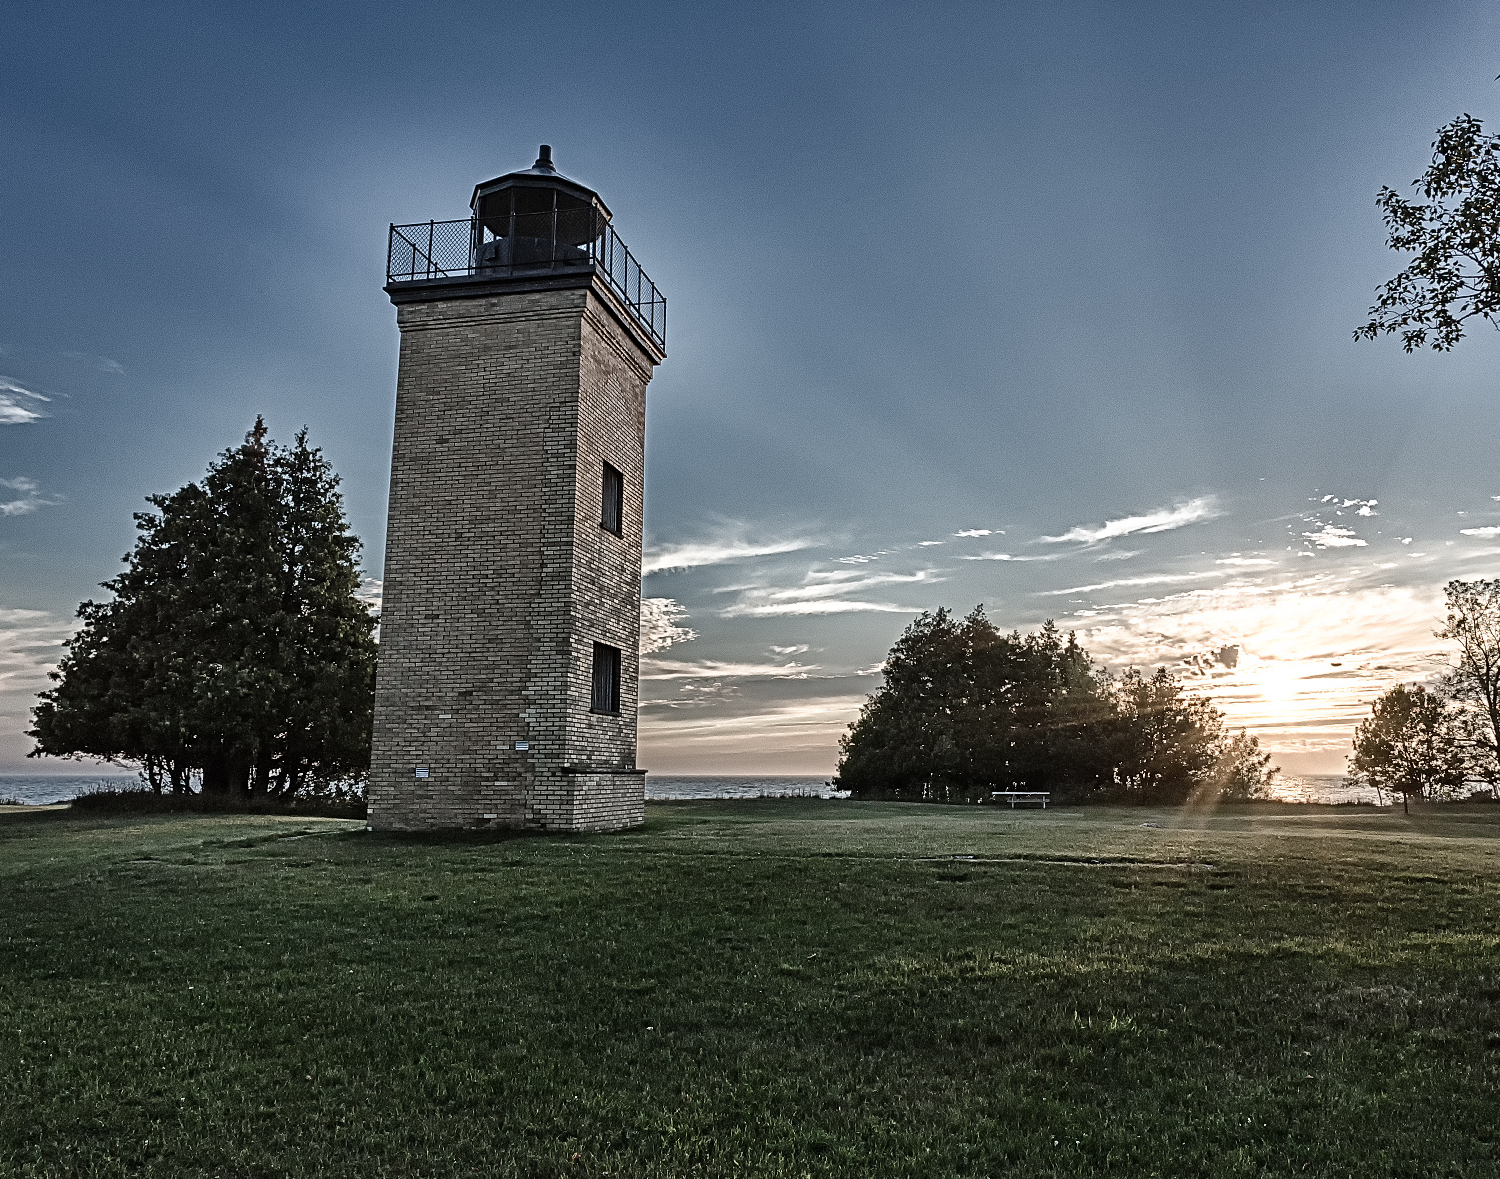 Sunset - Peninsula Point Light, MI  Yea, I got a little artistic with this one.